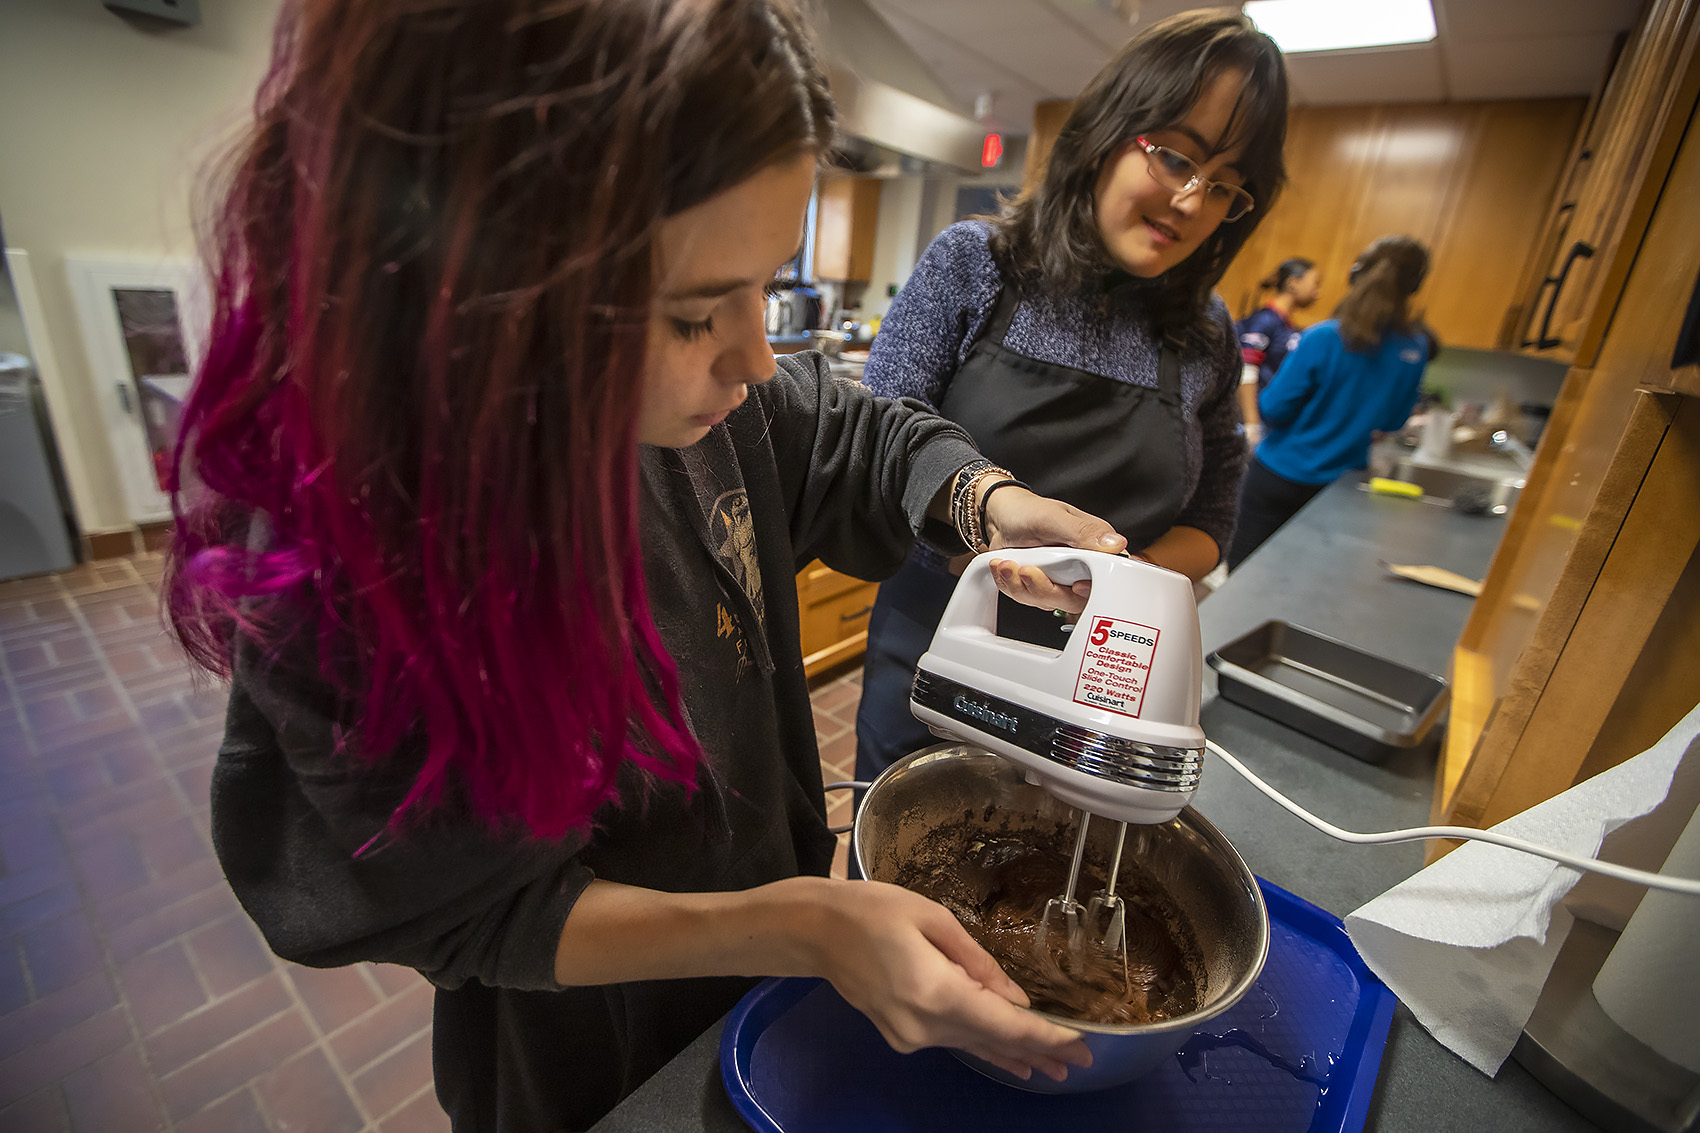 Maddy Baldwin uses a hand mixer to mix brownie dough as fellow student Sofia Causa Dumay assists. They are making brownies for the Super Bowl watch party. (Jesse Costa/WBUR)